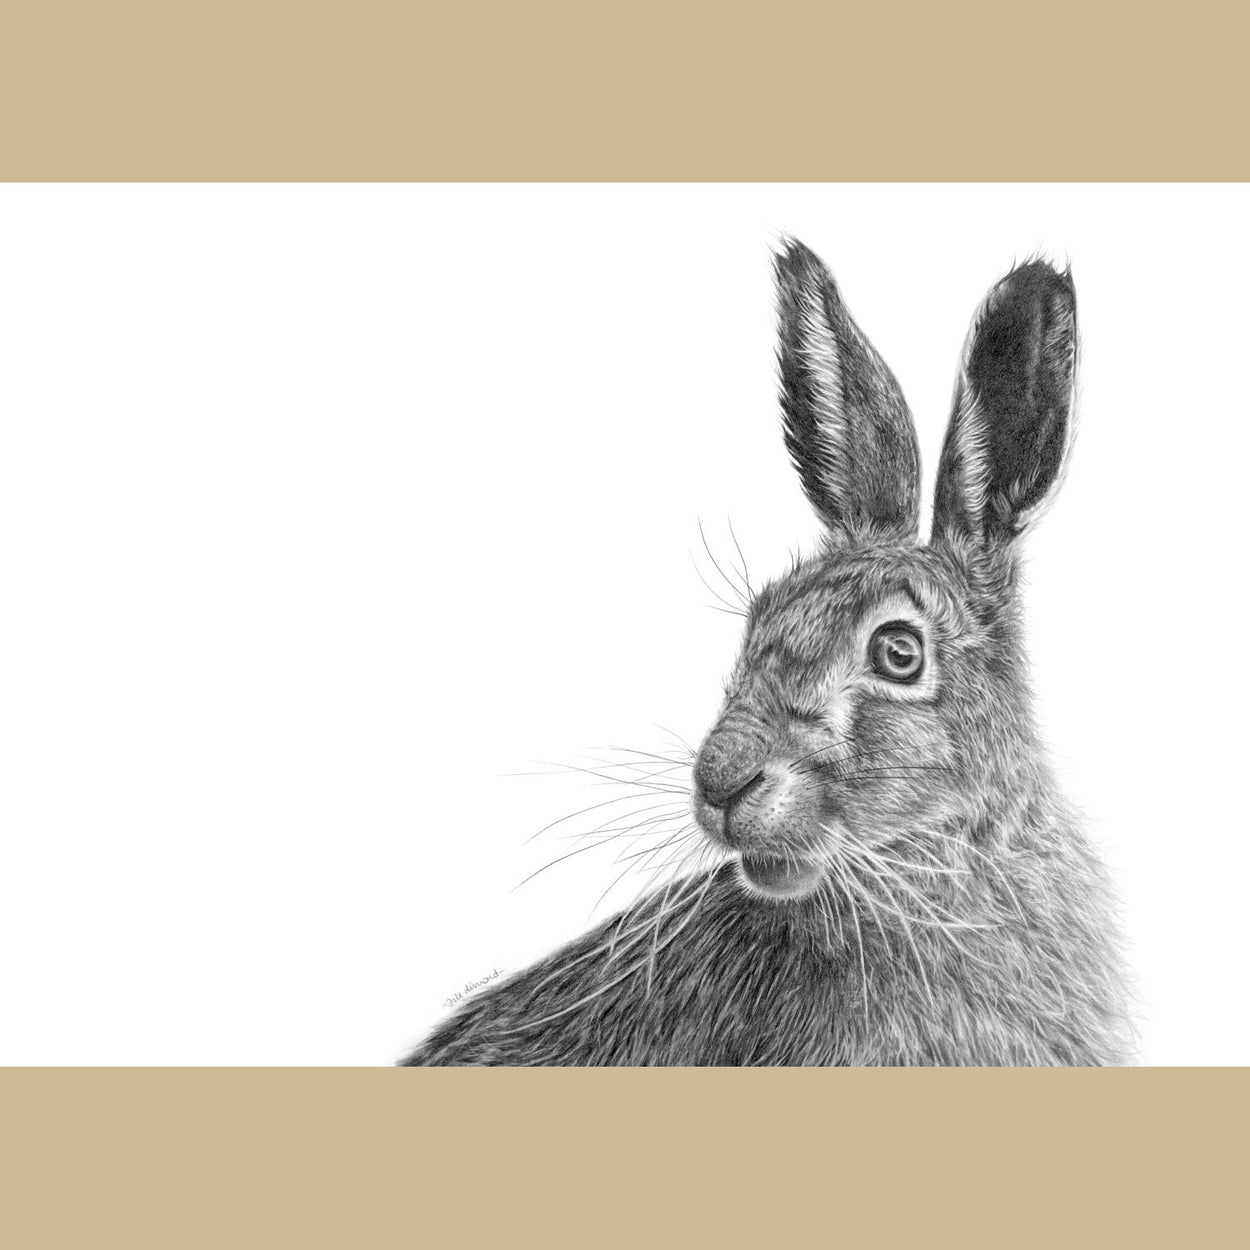 Original March Hare Pencil Drawing Wildlife - The Thriving Wild - Jill Dimond